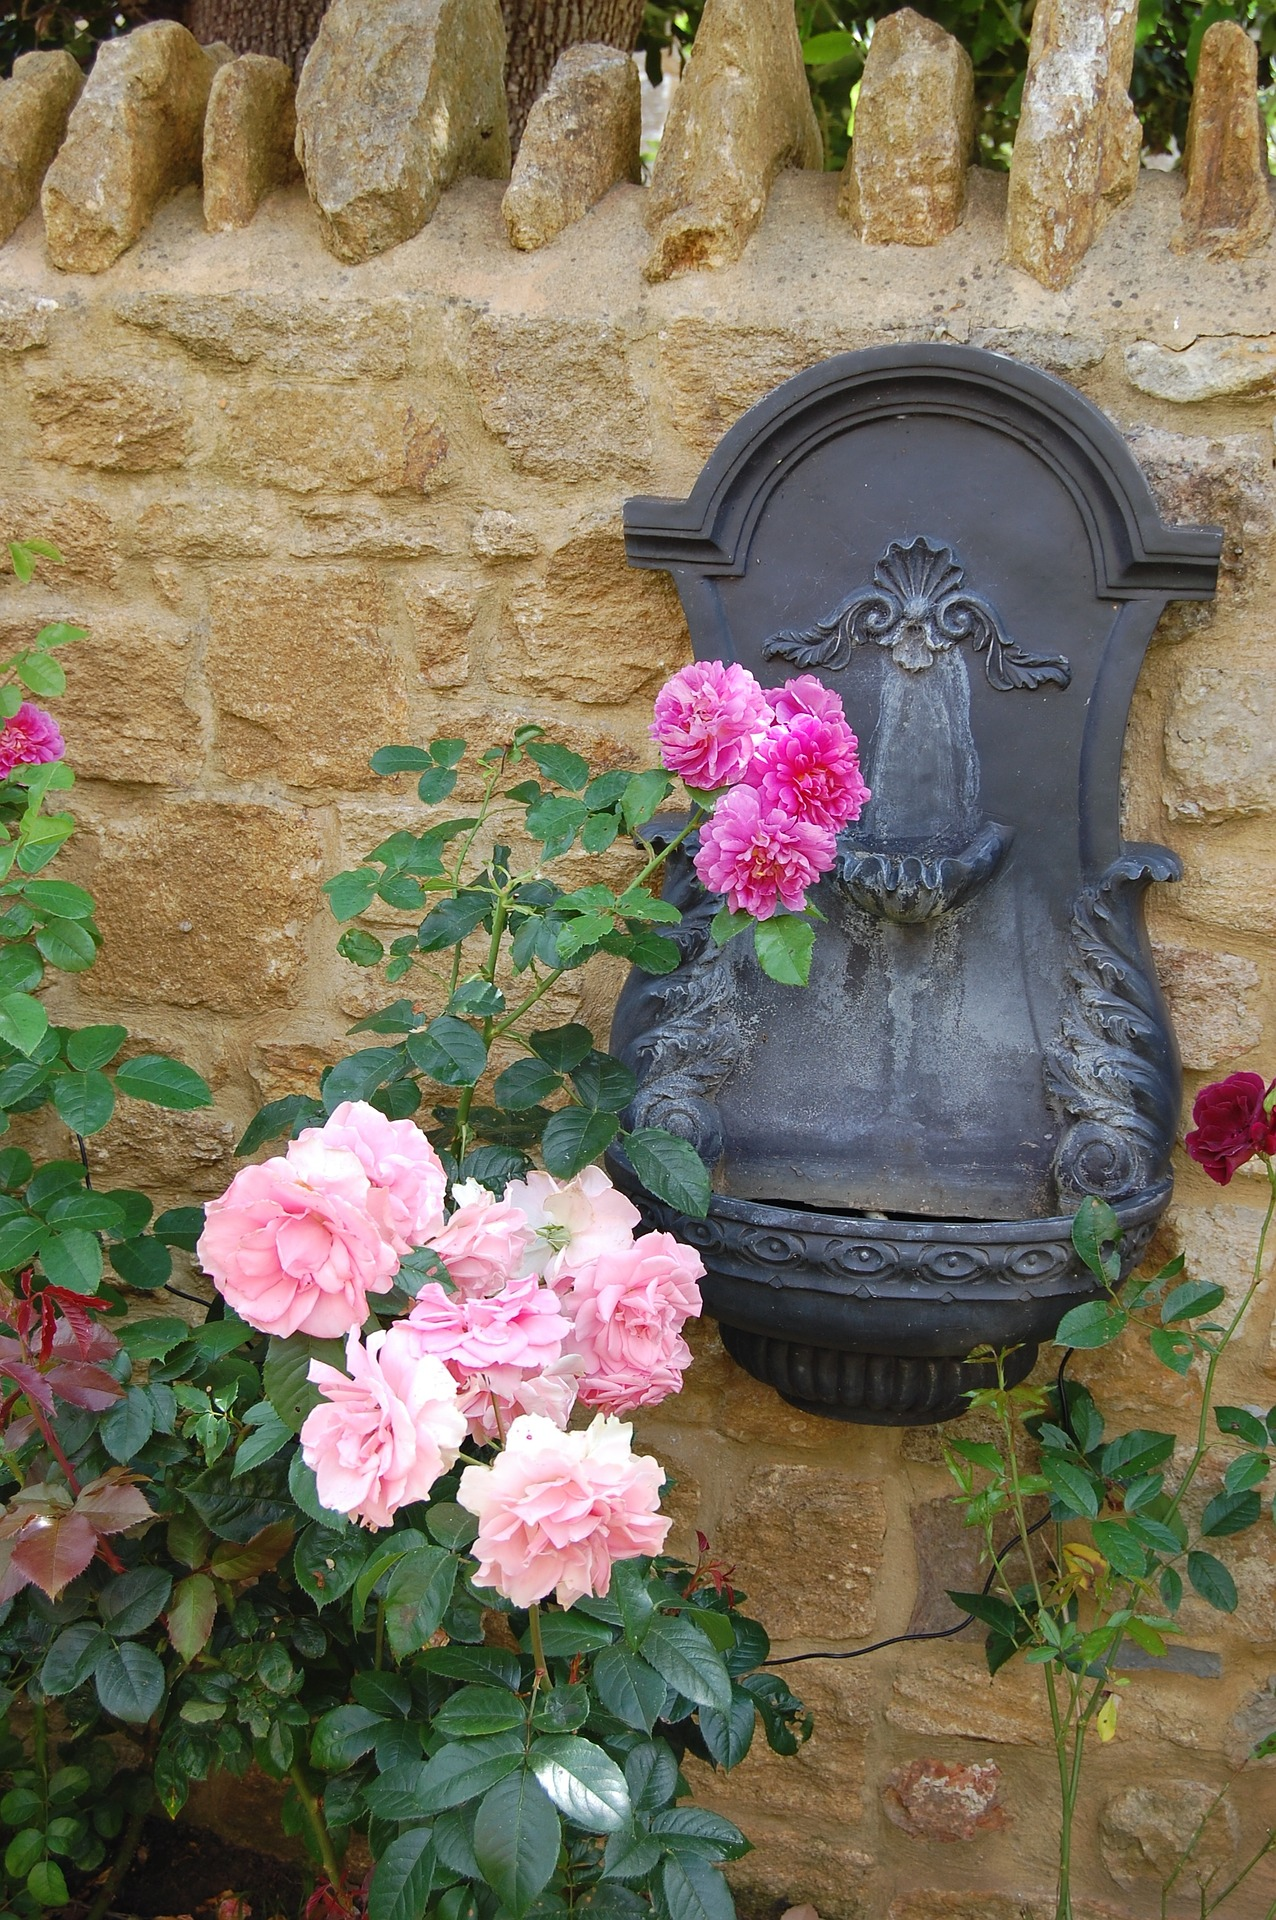 Gorgeous pink roses in bloom from June